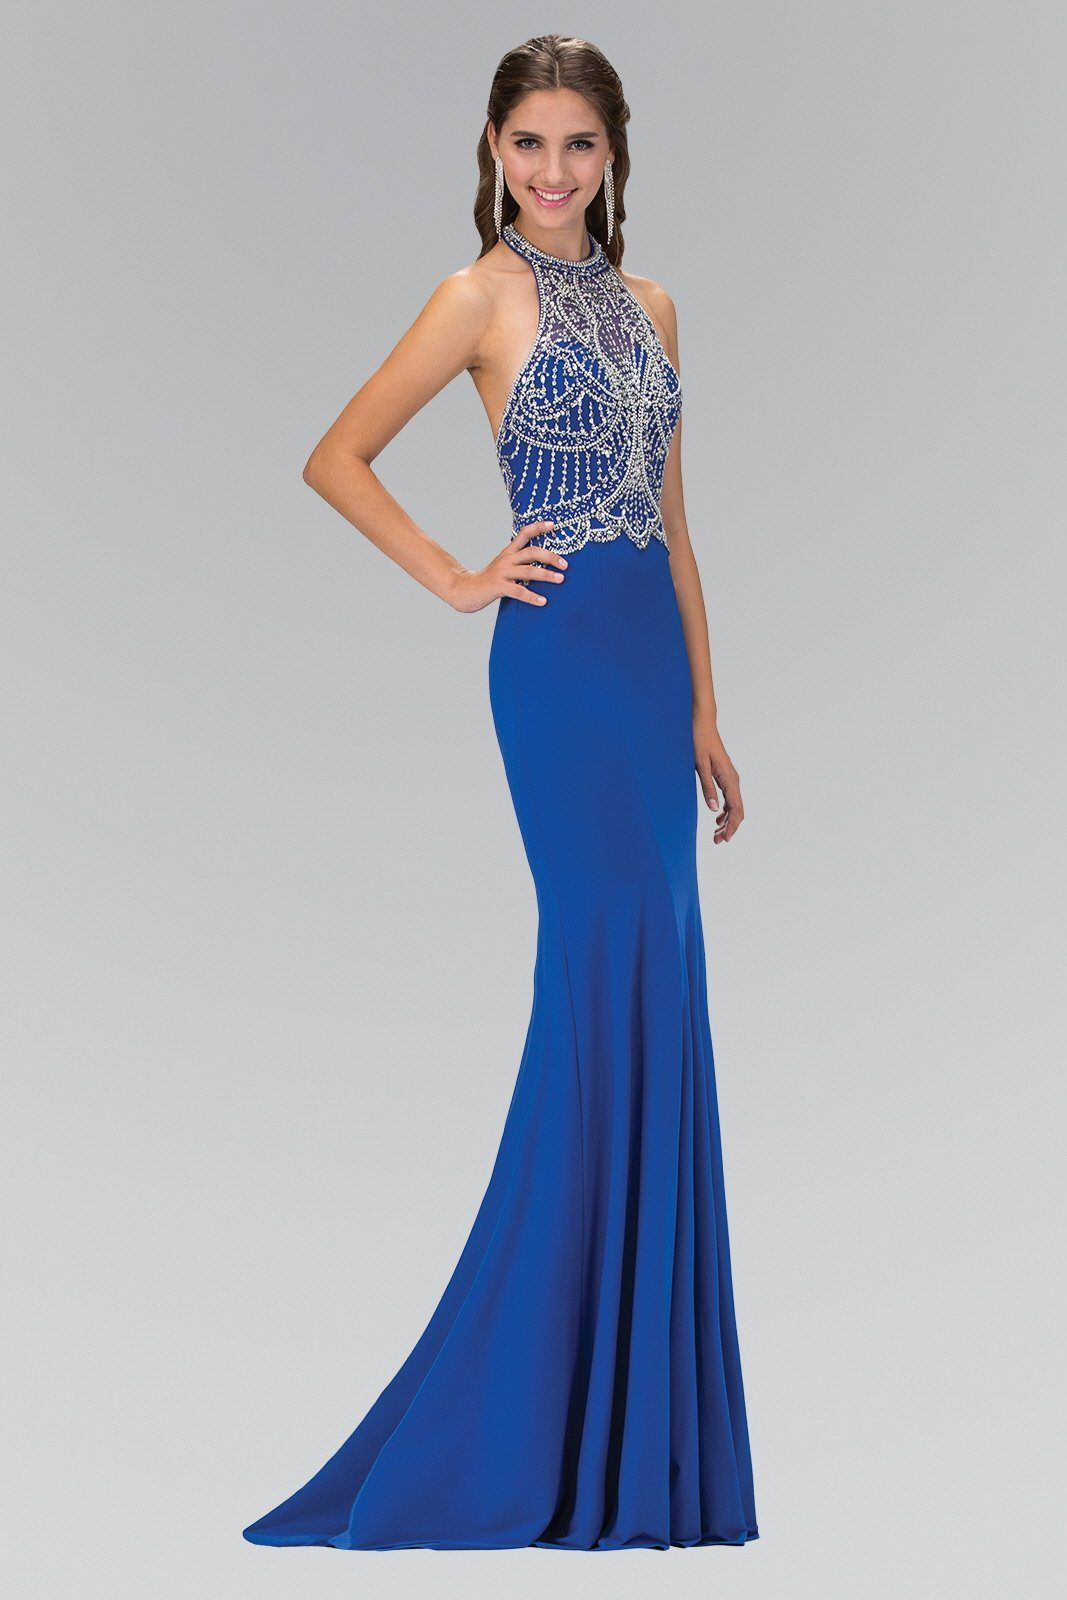 Sparkly royal blue prom dress gls 1301-Simply Fab Dress